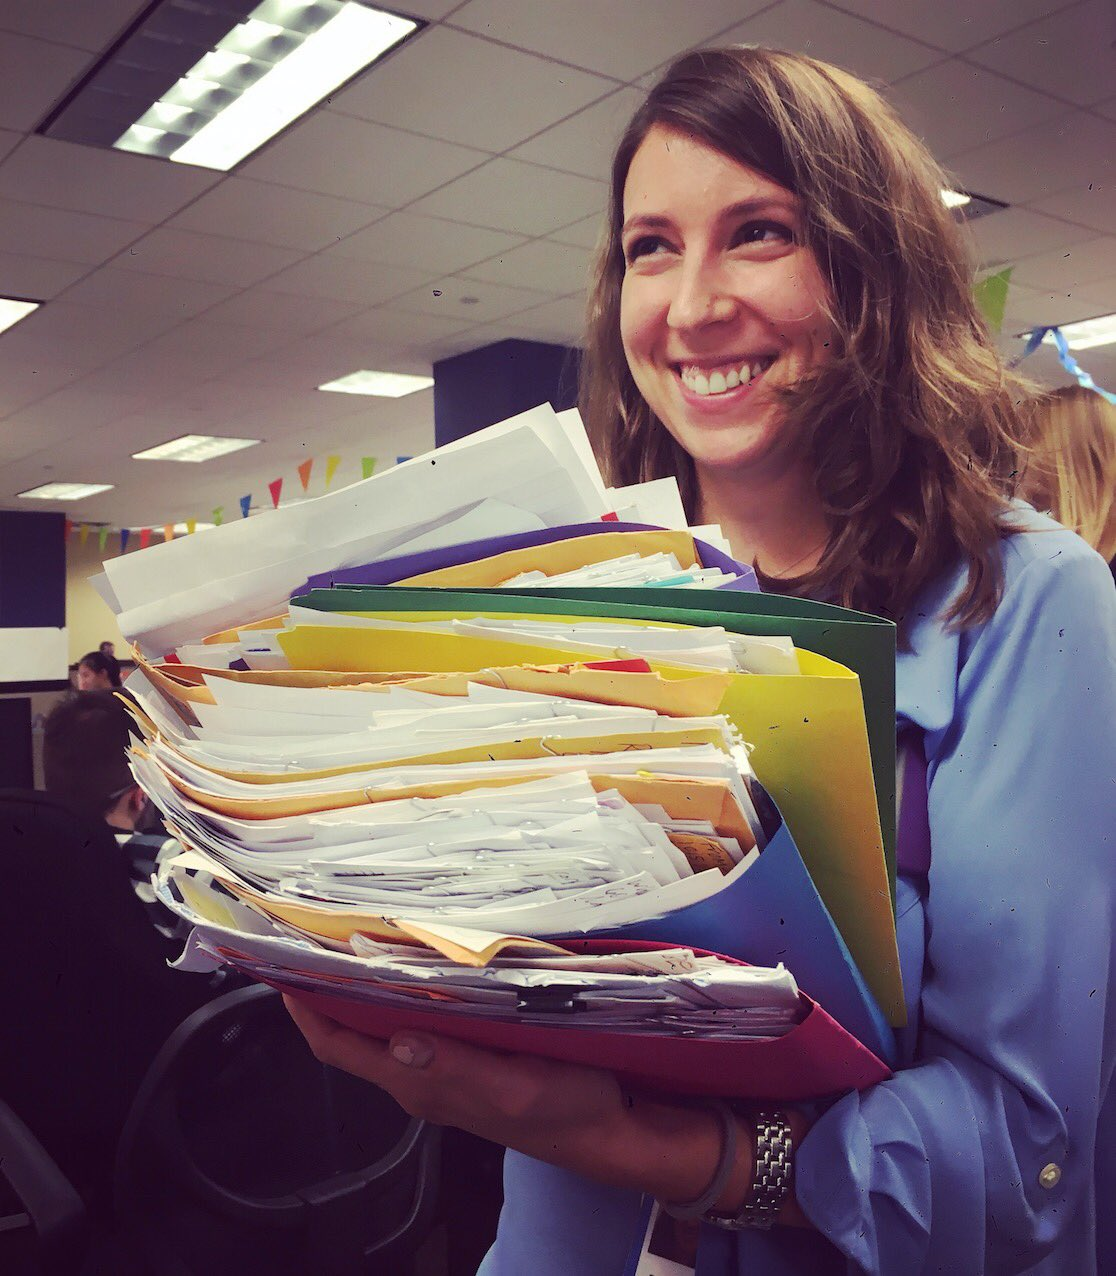 RT @kristina_schake: .@rebeccachalif & a big stack of letters to @HillaryClinton from little girls excited for the first woman president ht…